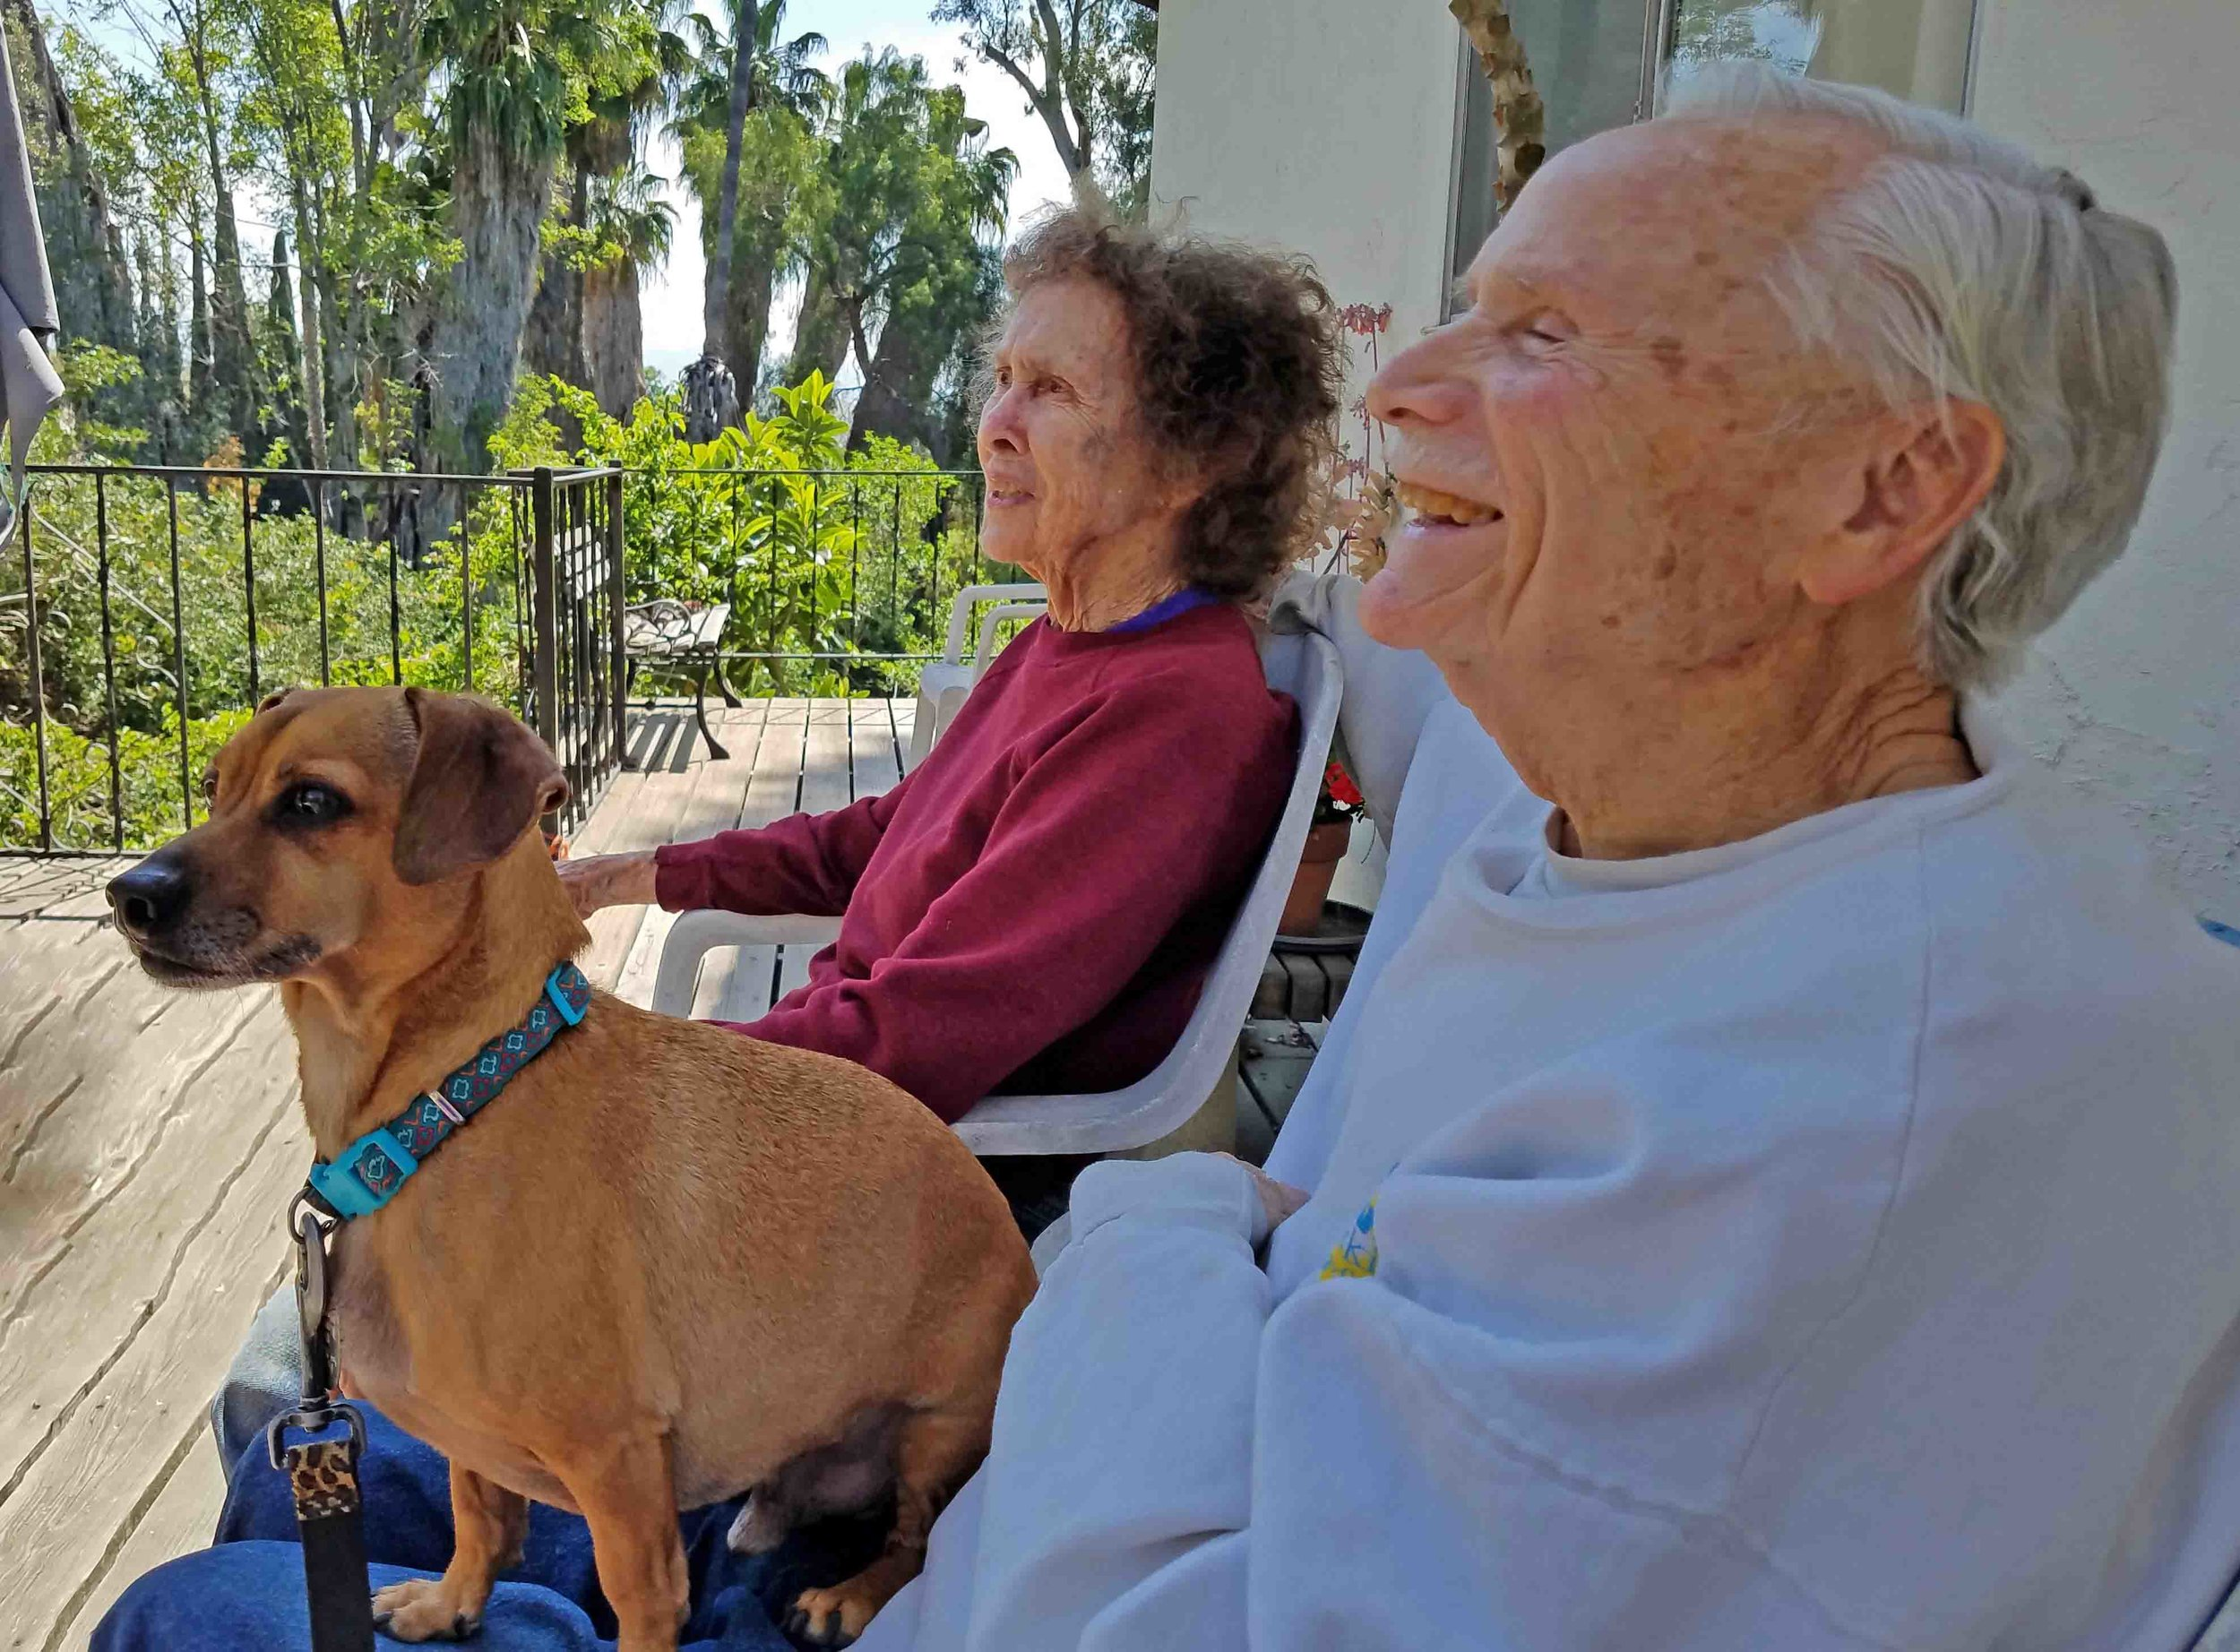 I love my folks. With Doodle, June 2019. Photo: (c) Barb Ayers, DogDiary.org